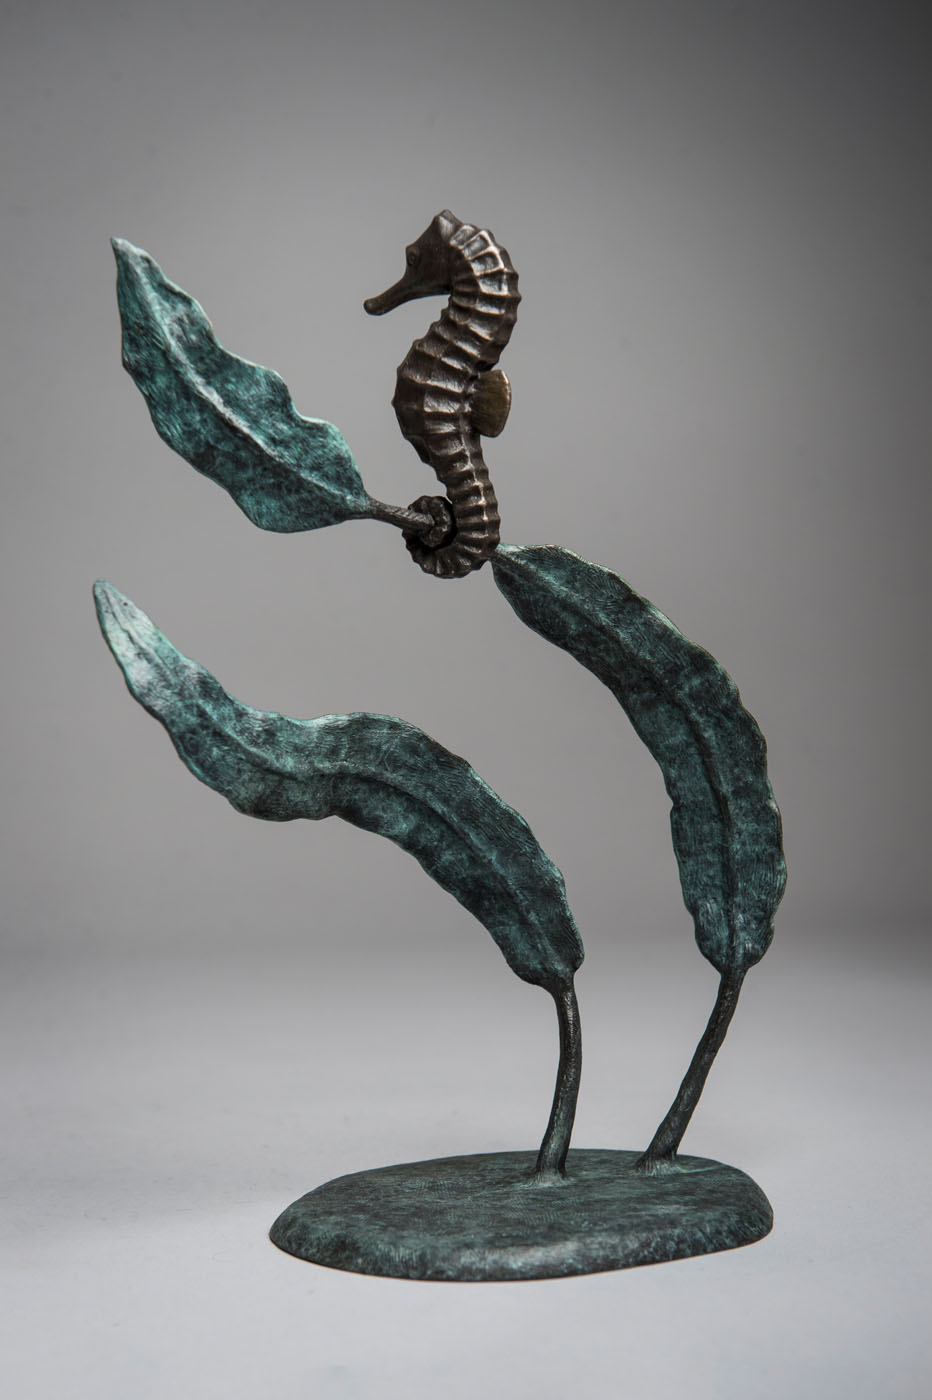 Bronze sculpture of a Sea Horse by artist Anthony Smith